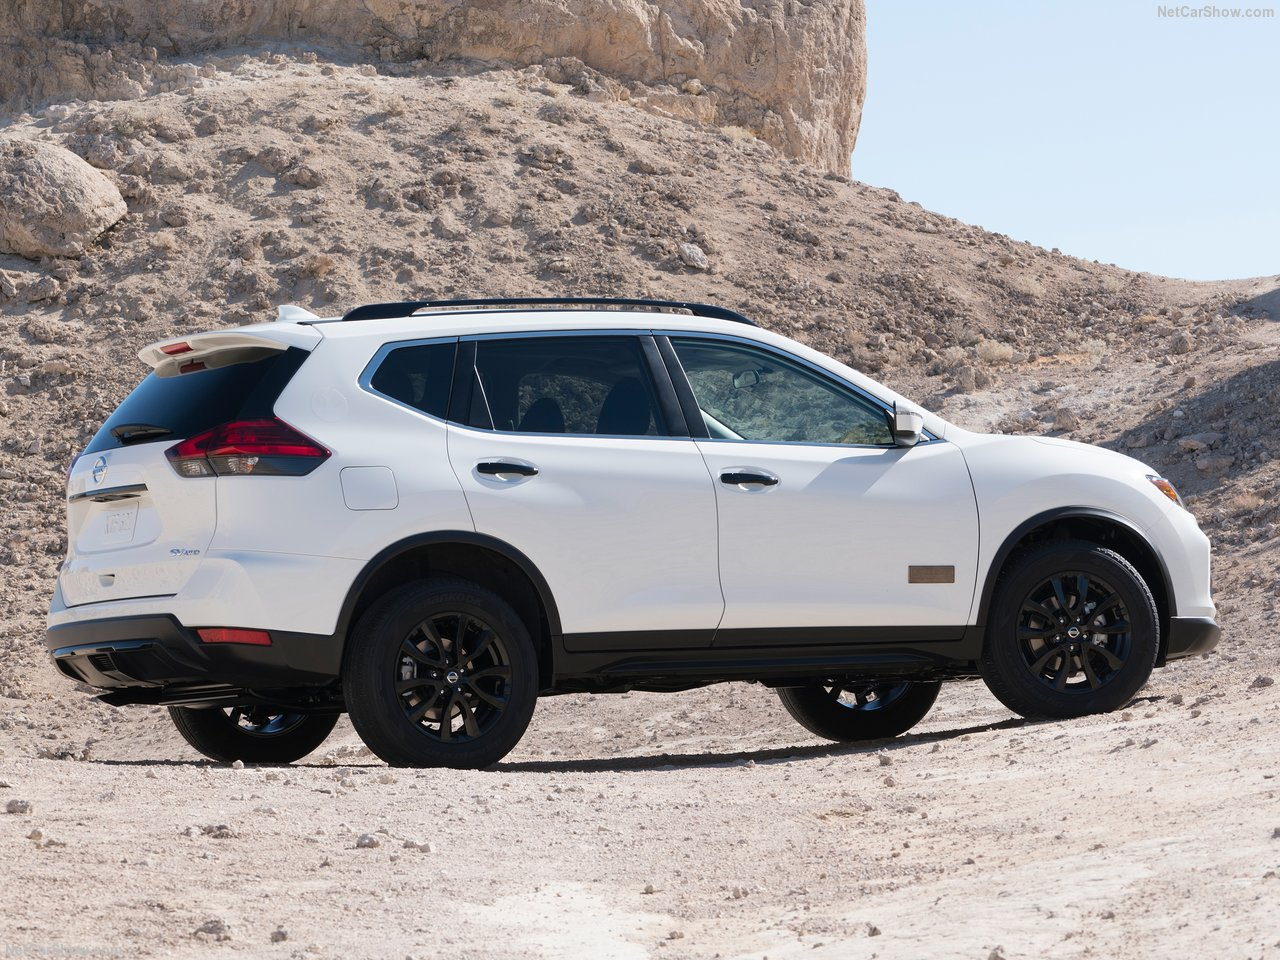 nissan-rogue_one_star_wars_edition-2017-1280-08